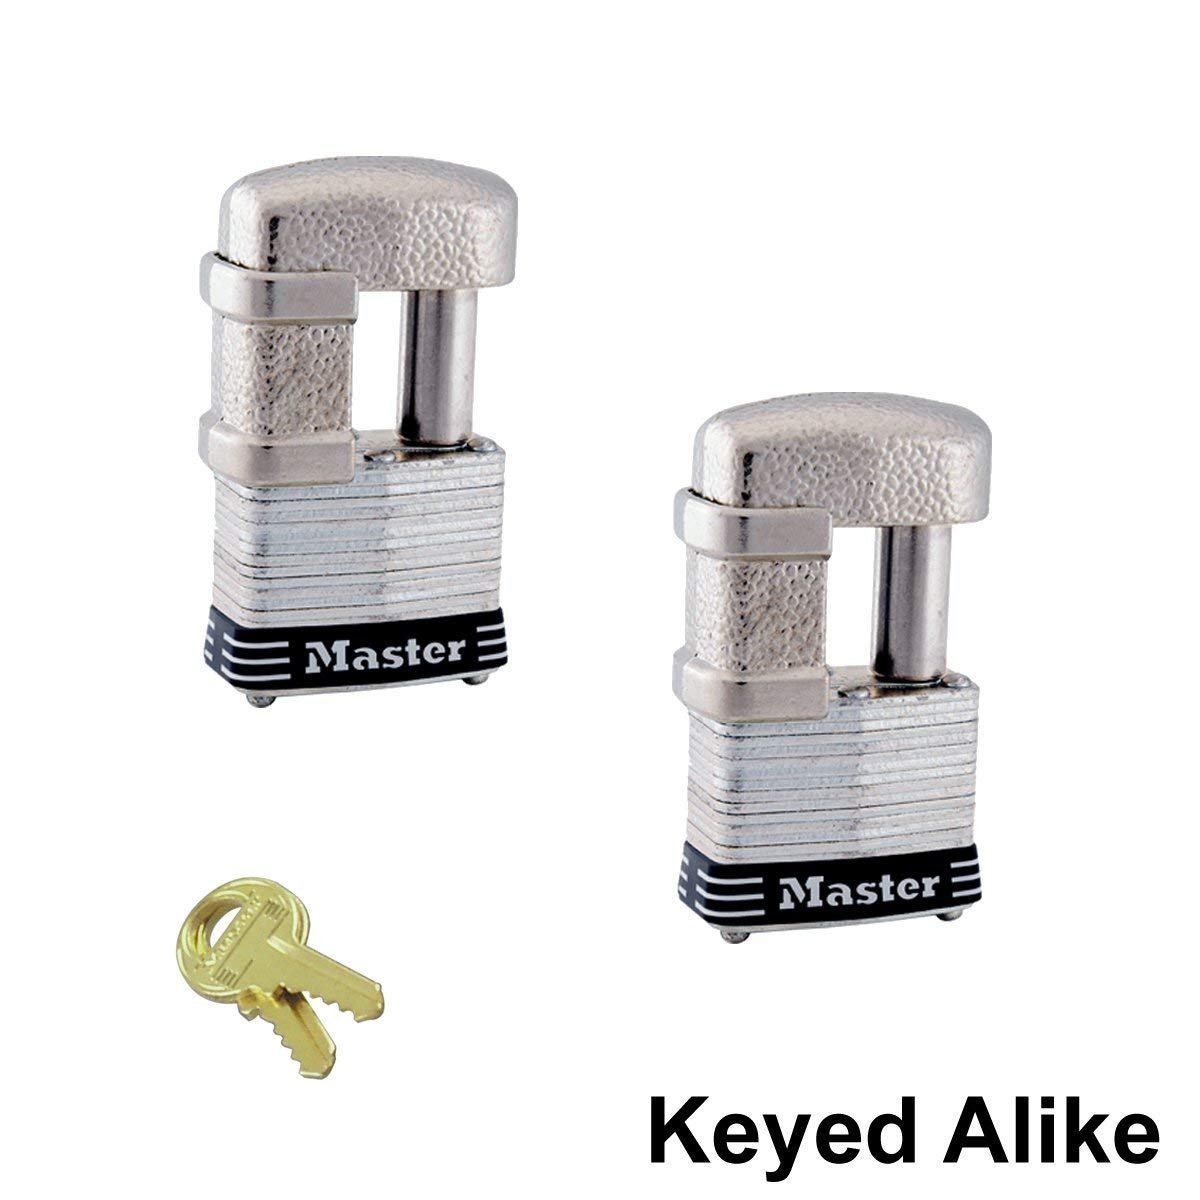 Master Lock - (2 Keyed Alike Trailer & Multi Purpose Padlocks, 37KA-2